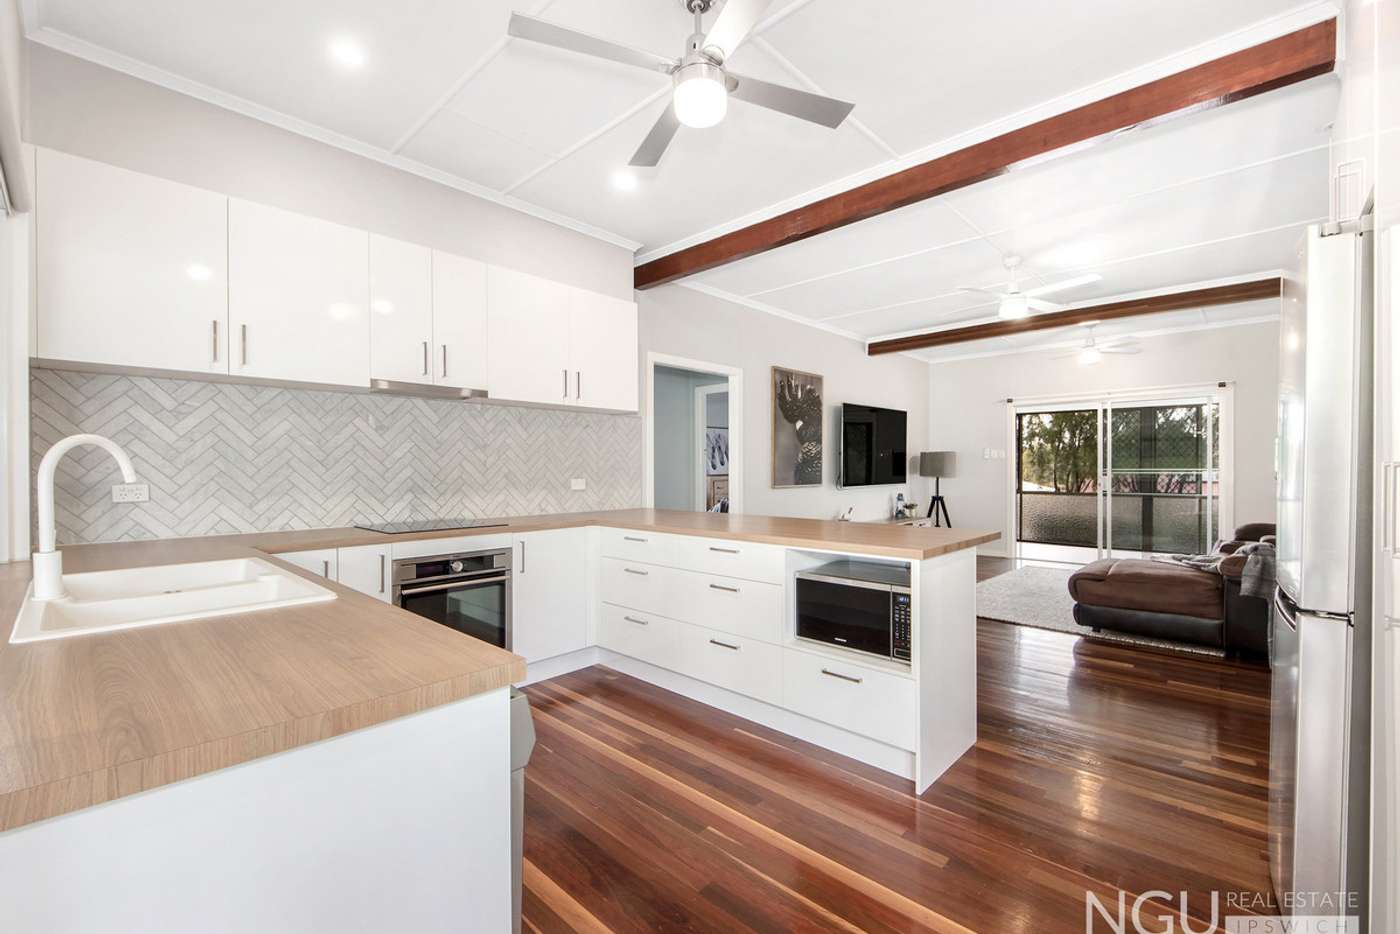 Sixth view of Homely house listing, 2 Johnston Street, Silkstone QLD 4304